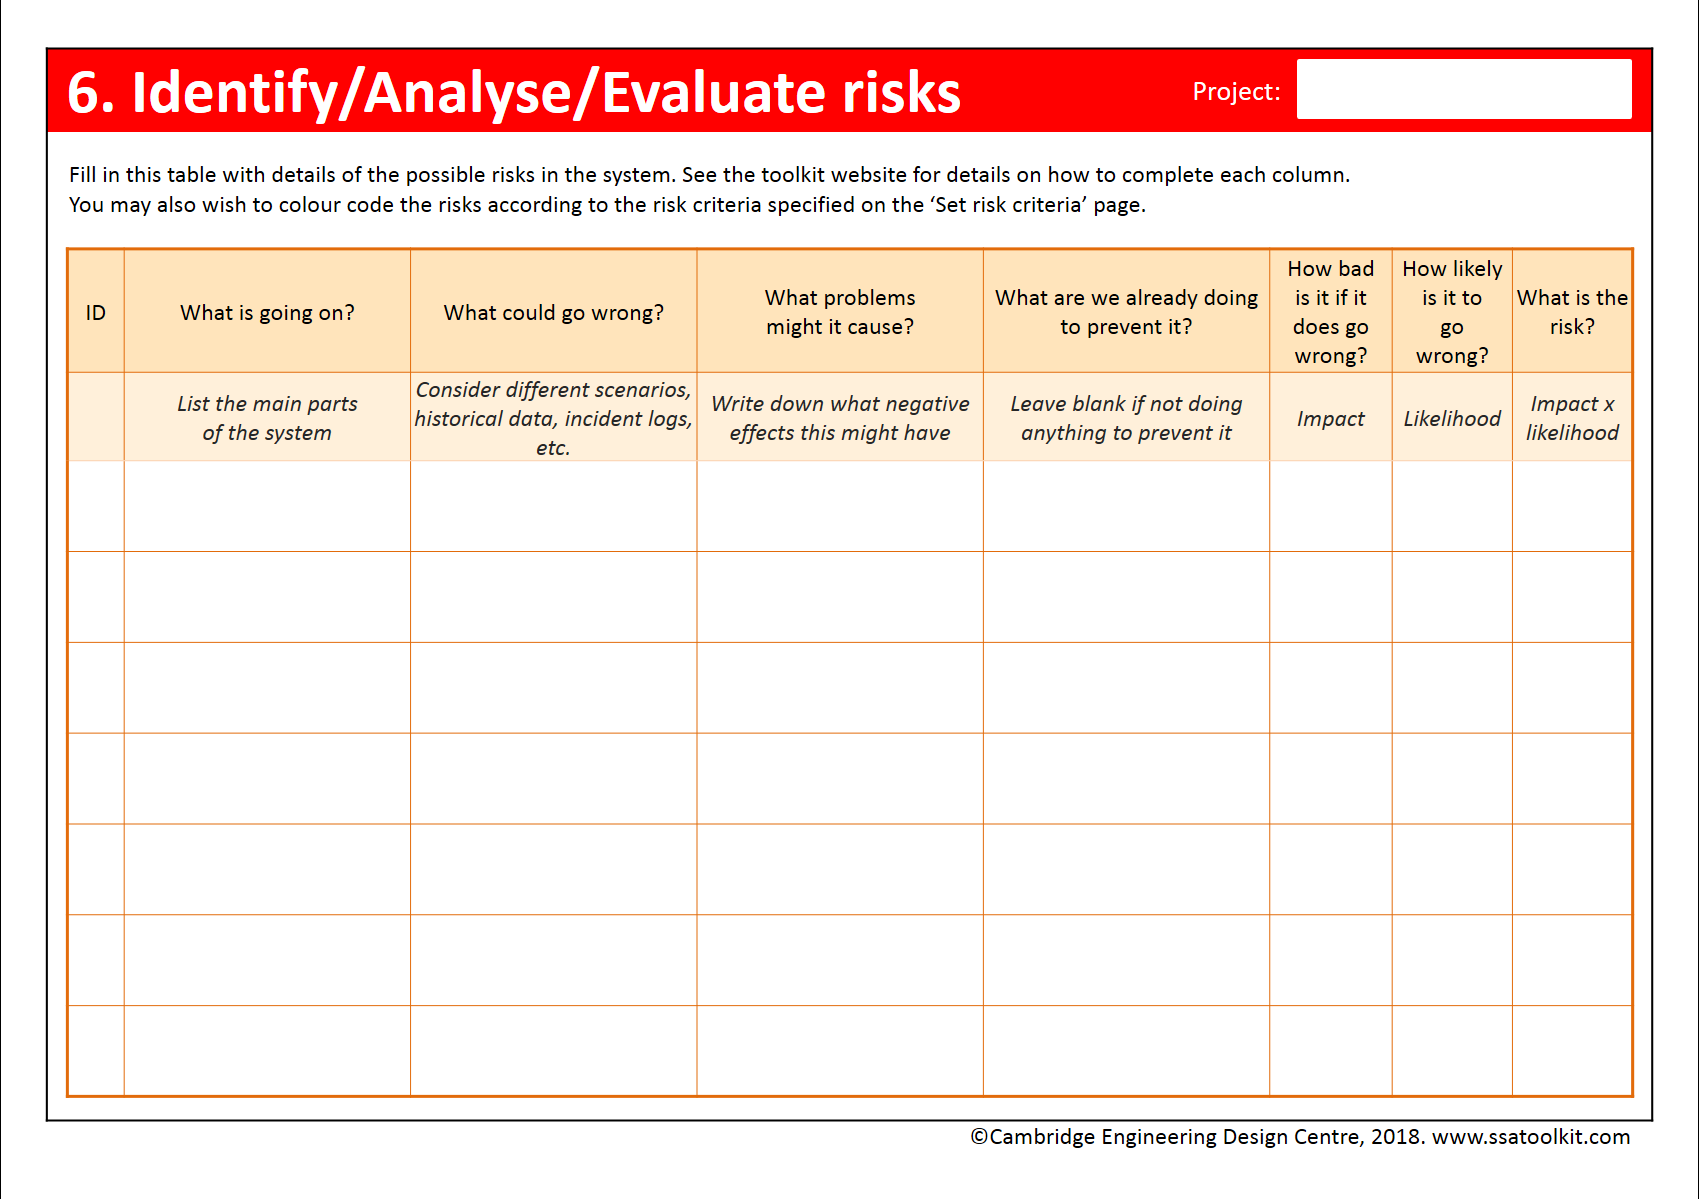 Screenshot of the Identify/Assess/Evaluate risks page of the assessment form